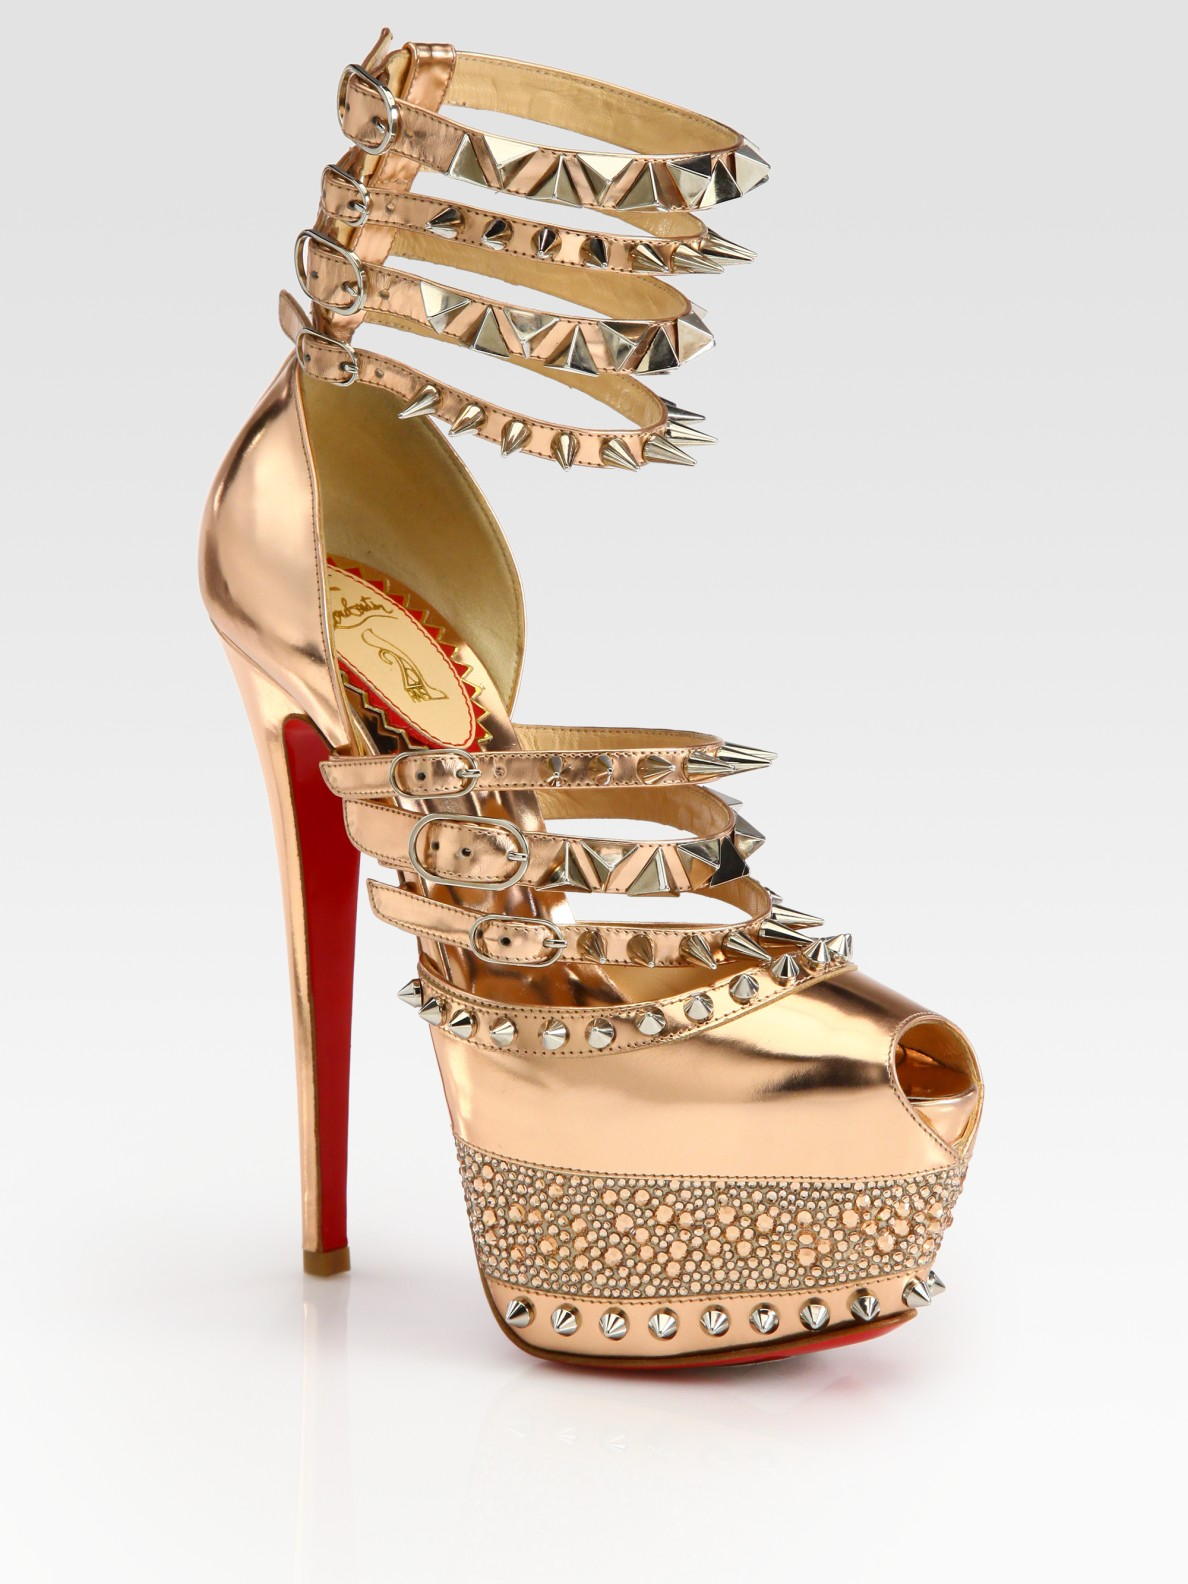 Lyst - Christian Louboutin Isolde Studded Metallic Leather Platform ... 27101a74c